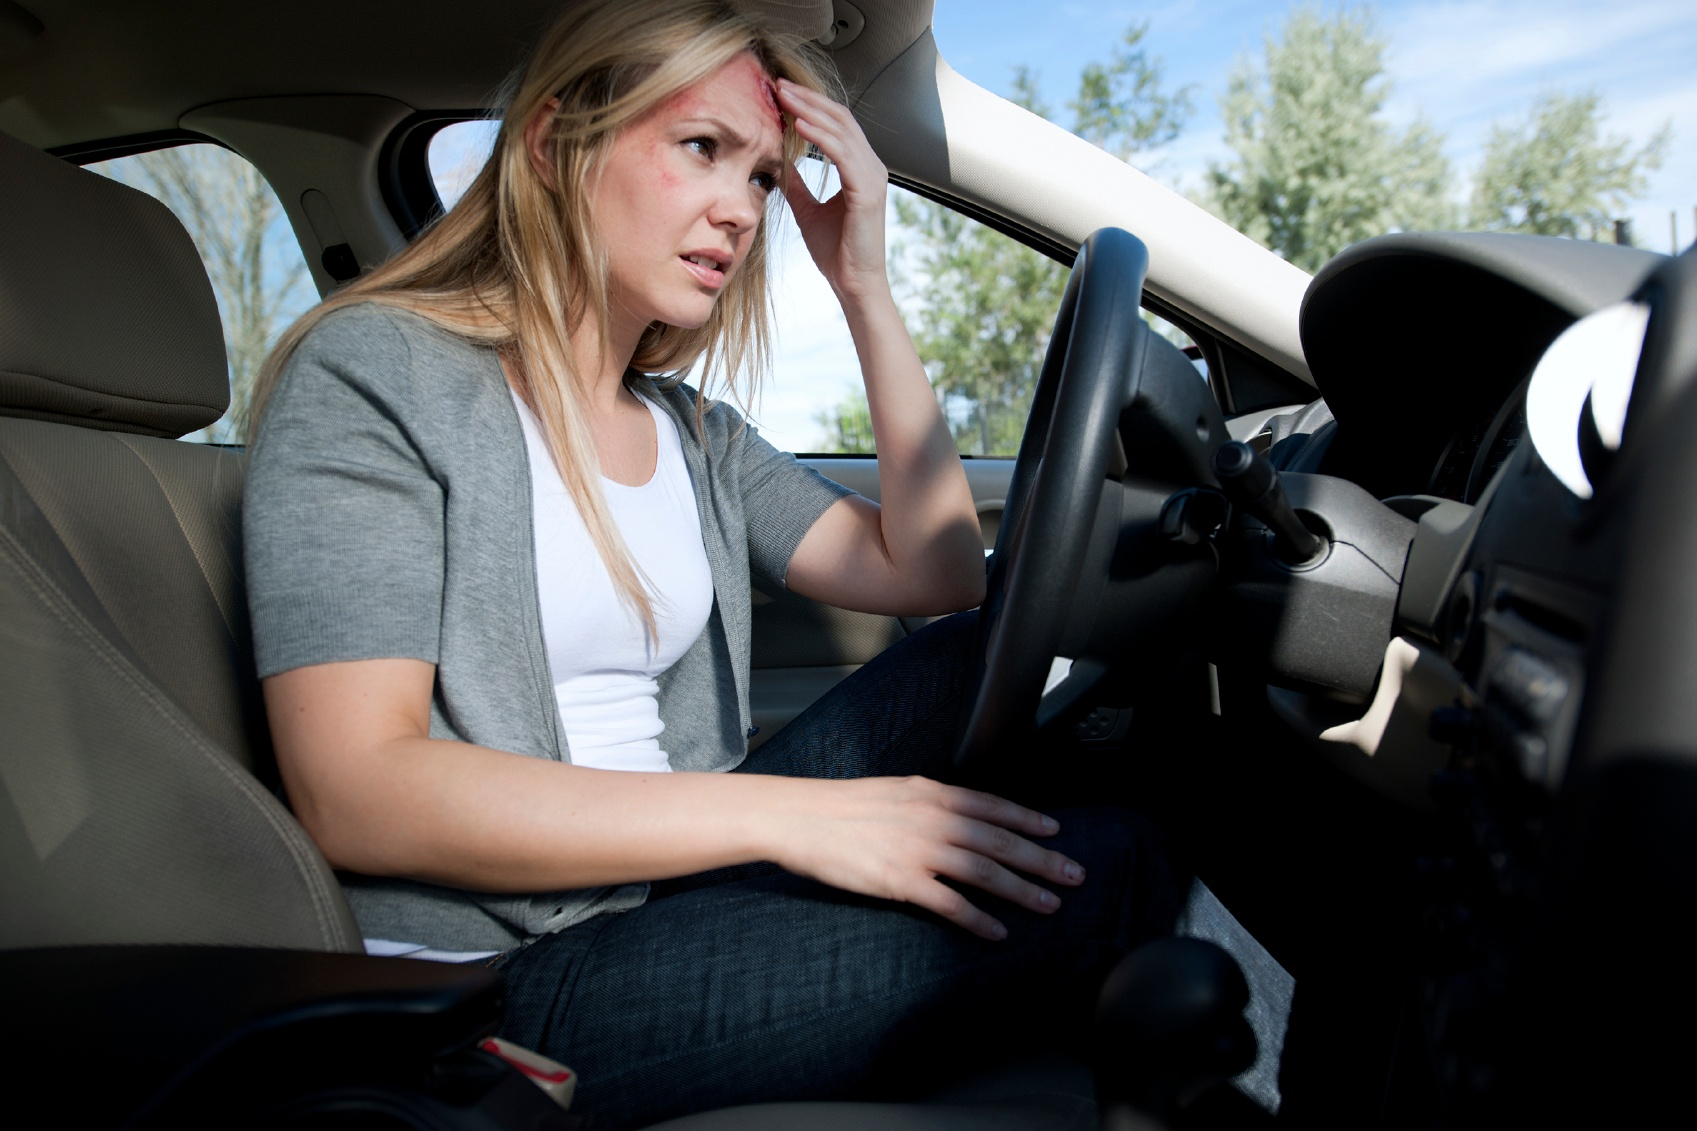 What to do after a personal injury accident in Georgia?